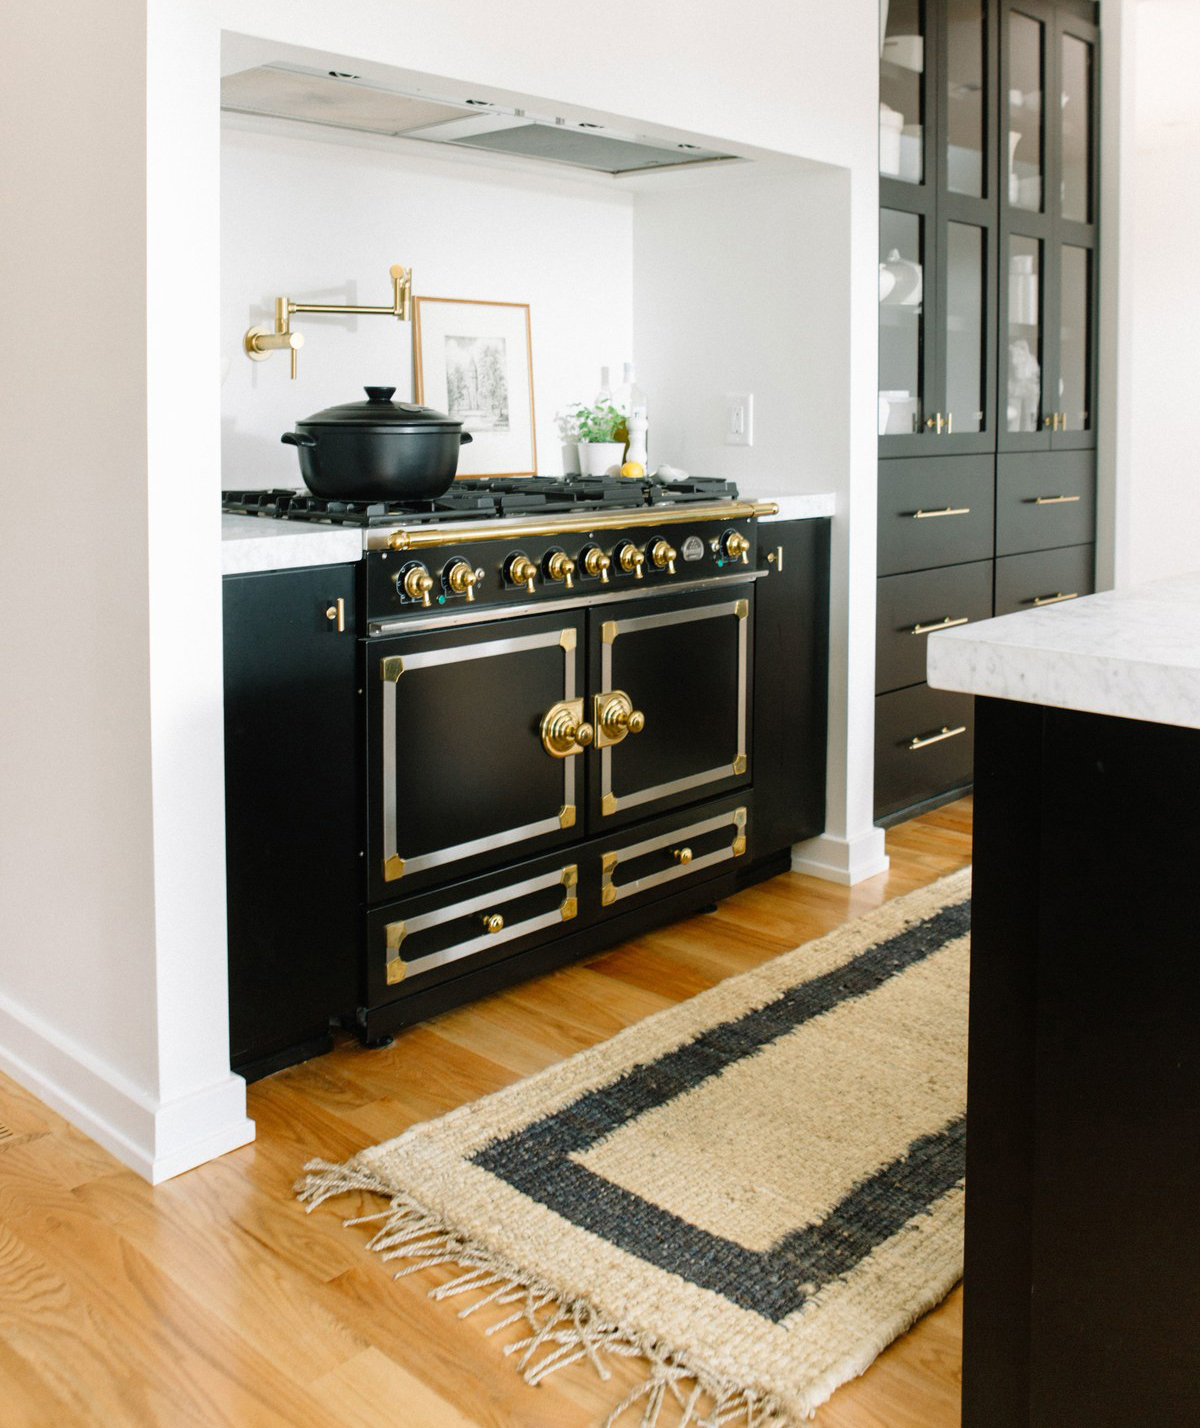 Kitchen with black stove and woven rug